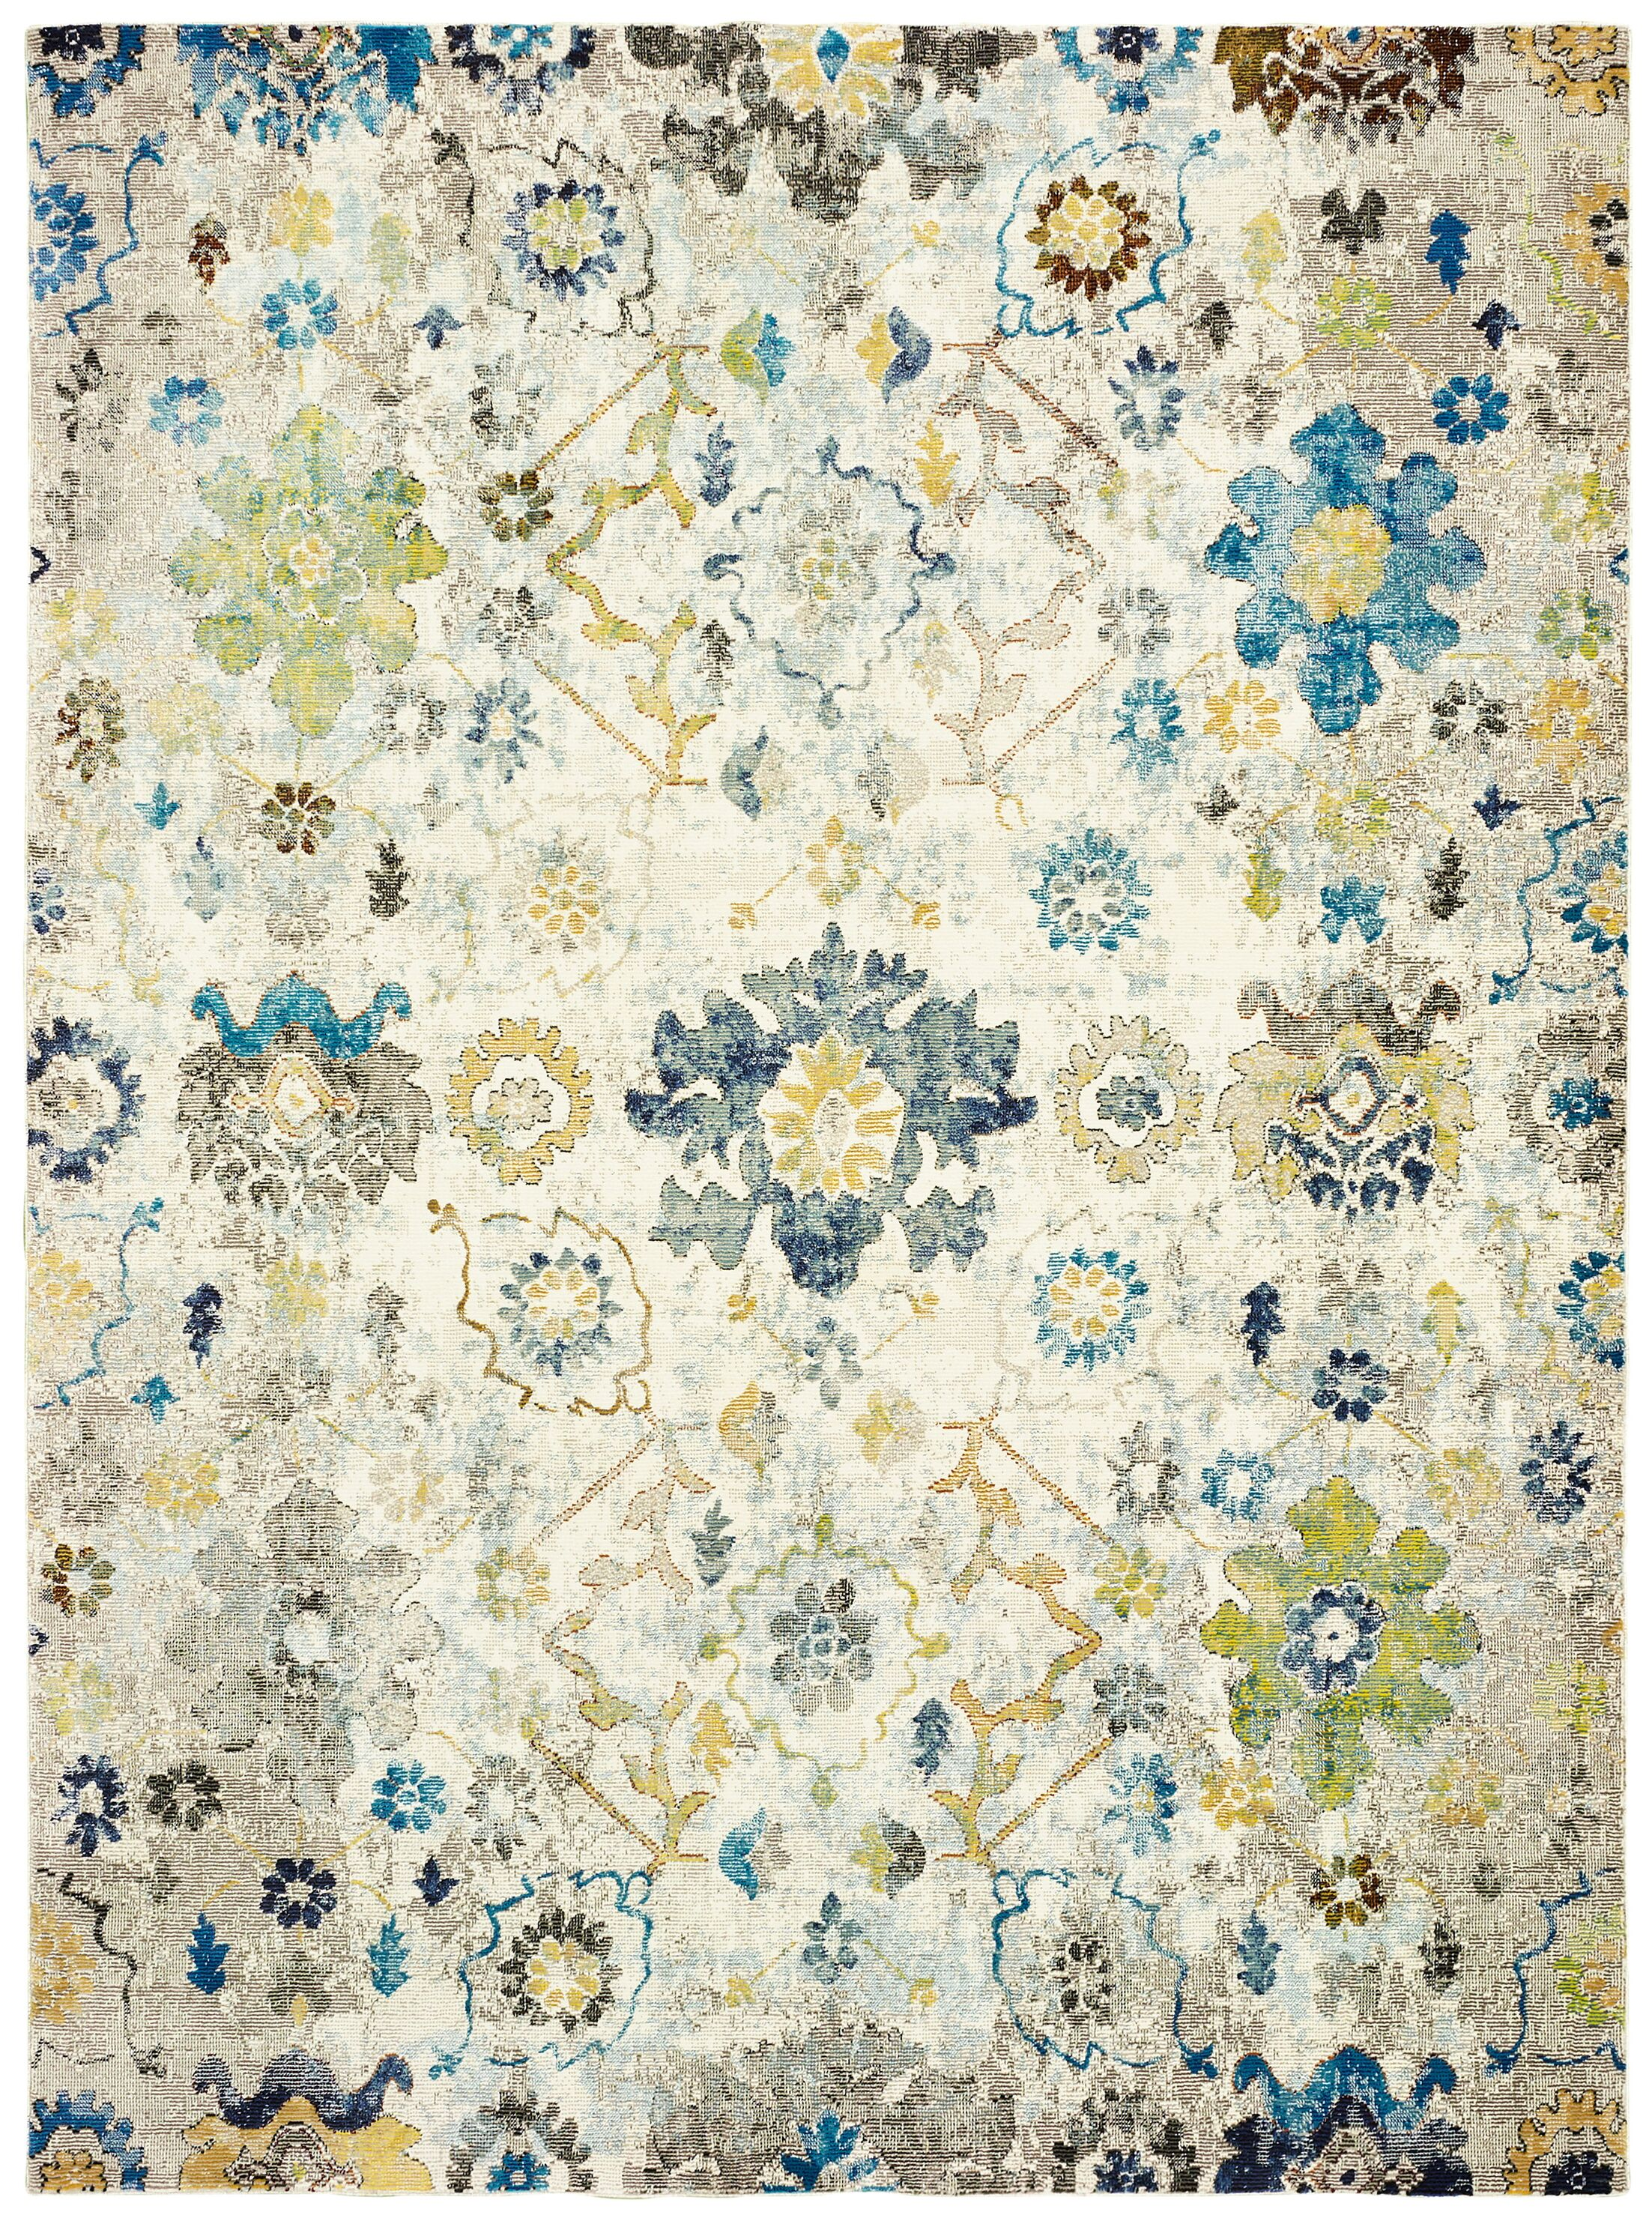 Amory Distressed Botanical Cream/Gray/Blue Area Rug Rug Size: Rectangle 8' x 10'